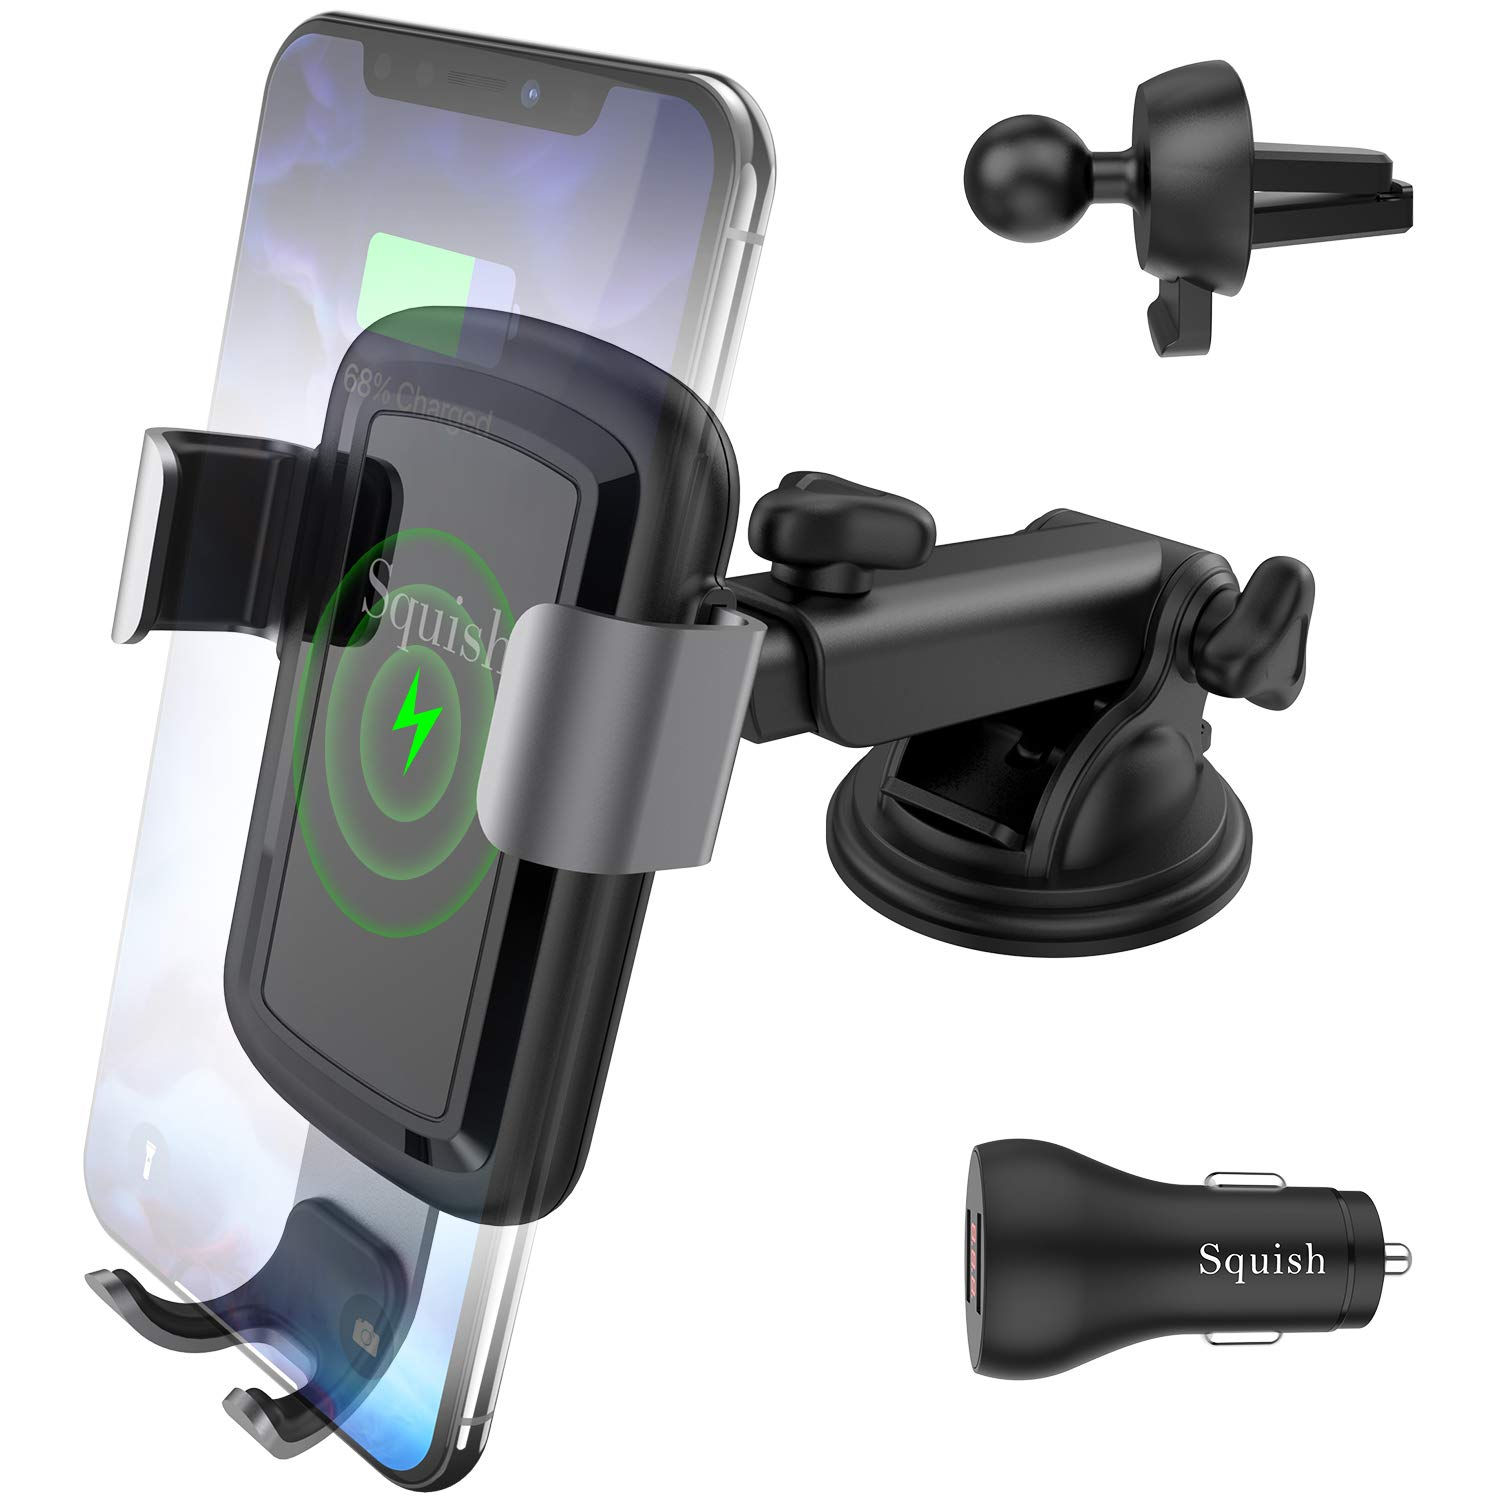 Squish Wireless Car Charger with QC 3.0 Car Charger, 10W 7.5W Qi Fast Charging Car Charger Mount, Adjustable Car Phone Holder Phone Mount for iPhone Samsung S10/S10+/S9/S9+/S8/S7 Samsung Note 10 9 8 7 by Squish